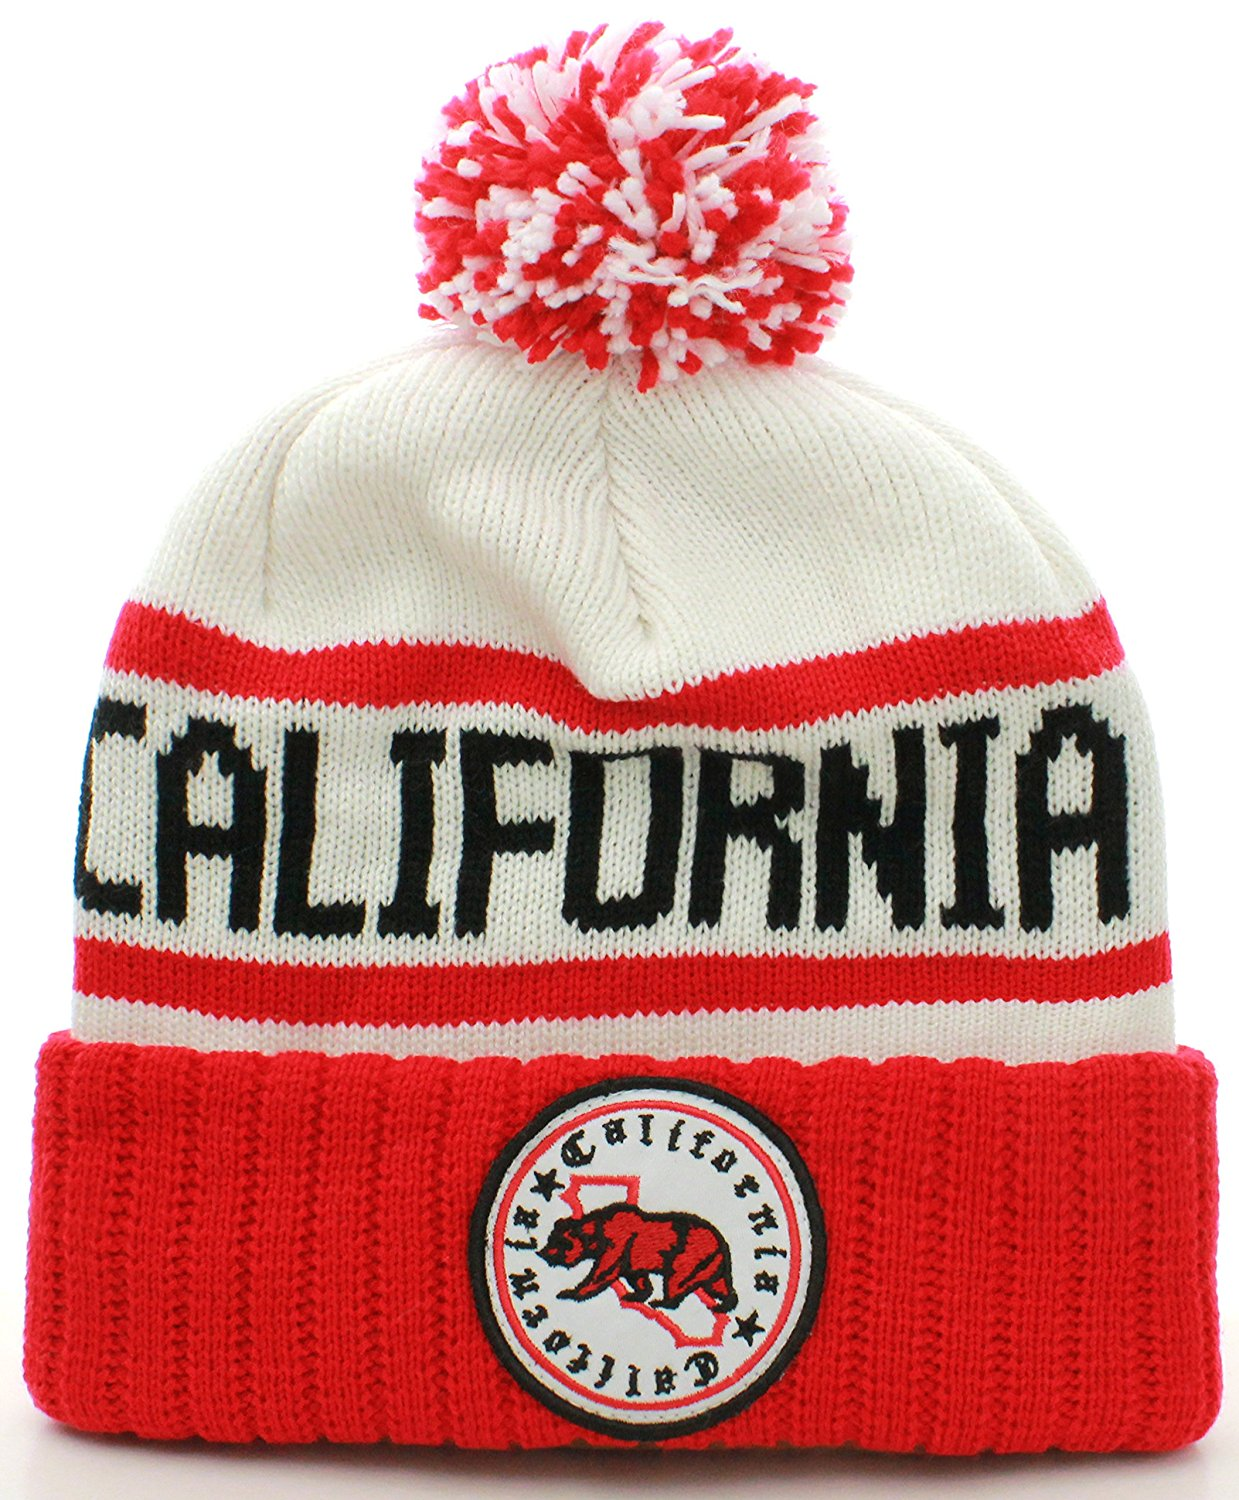 6783b3cd78a2e7 Get Quotations · American Cities California Republic Cuff Beanie Cable Knit  Pom Pom Hat Cap